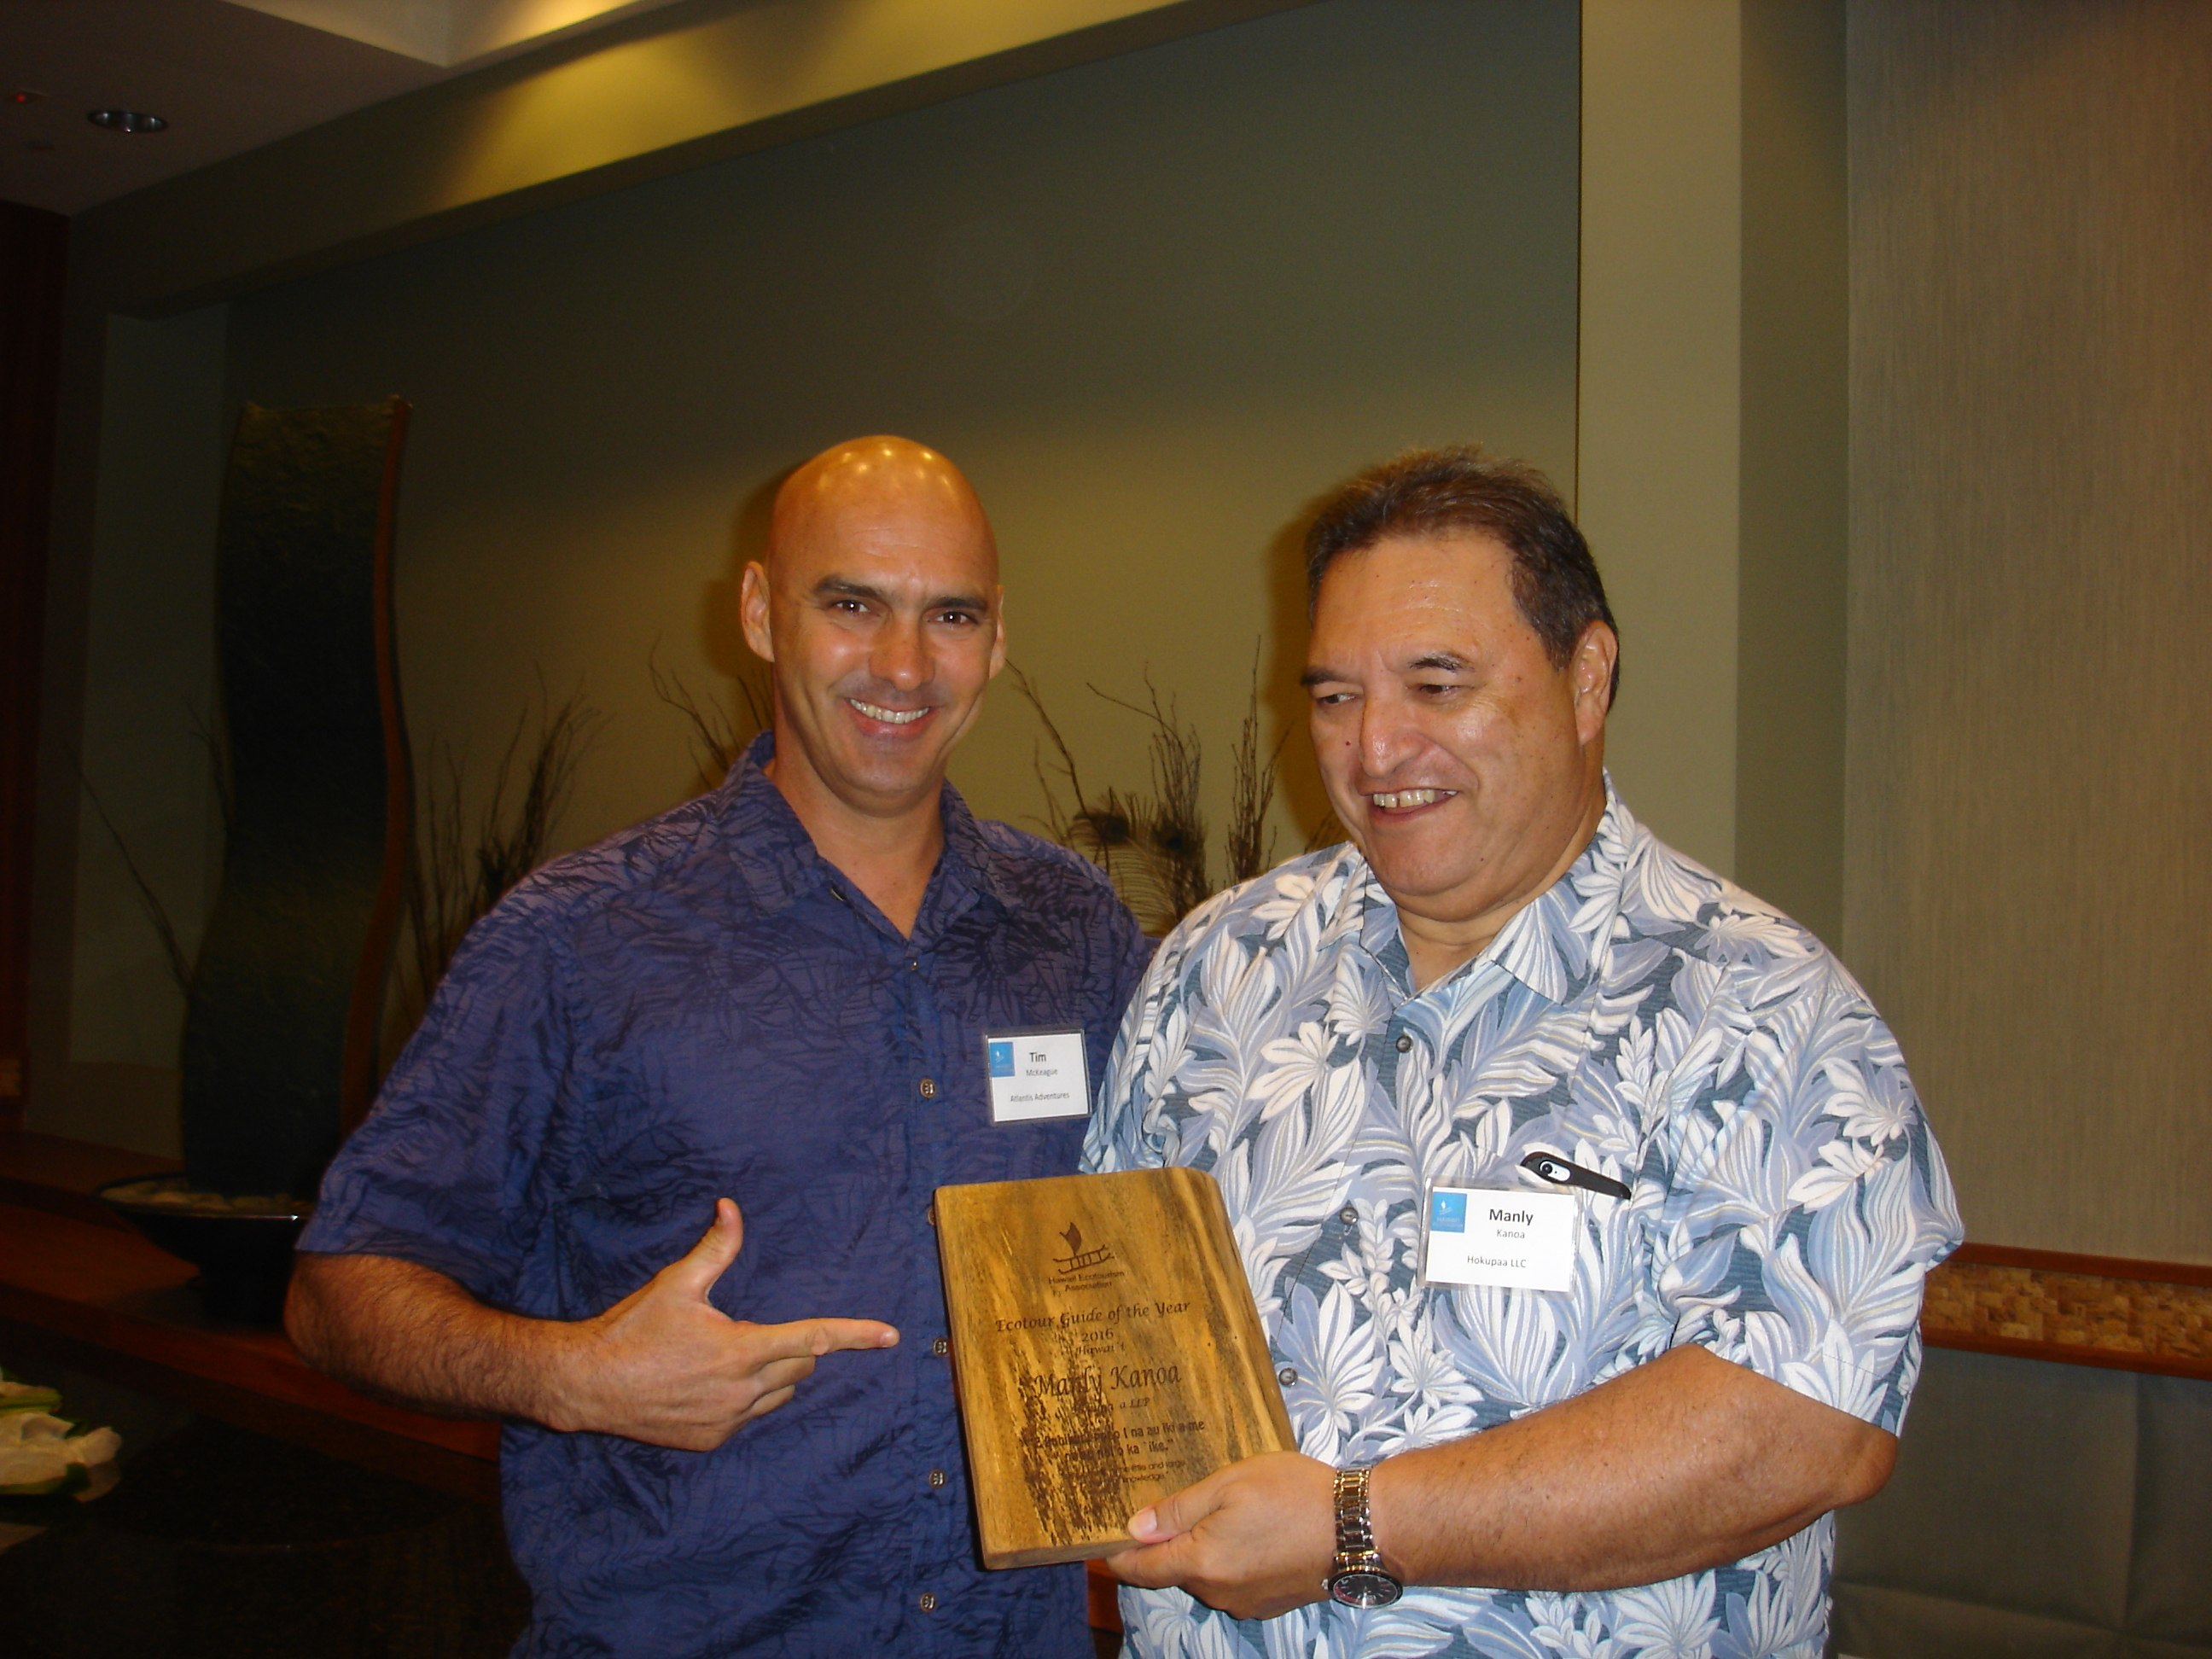 tim-with-tour-guide-winner-manly-kanoa-hokupaa